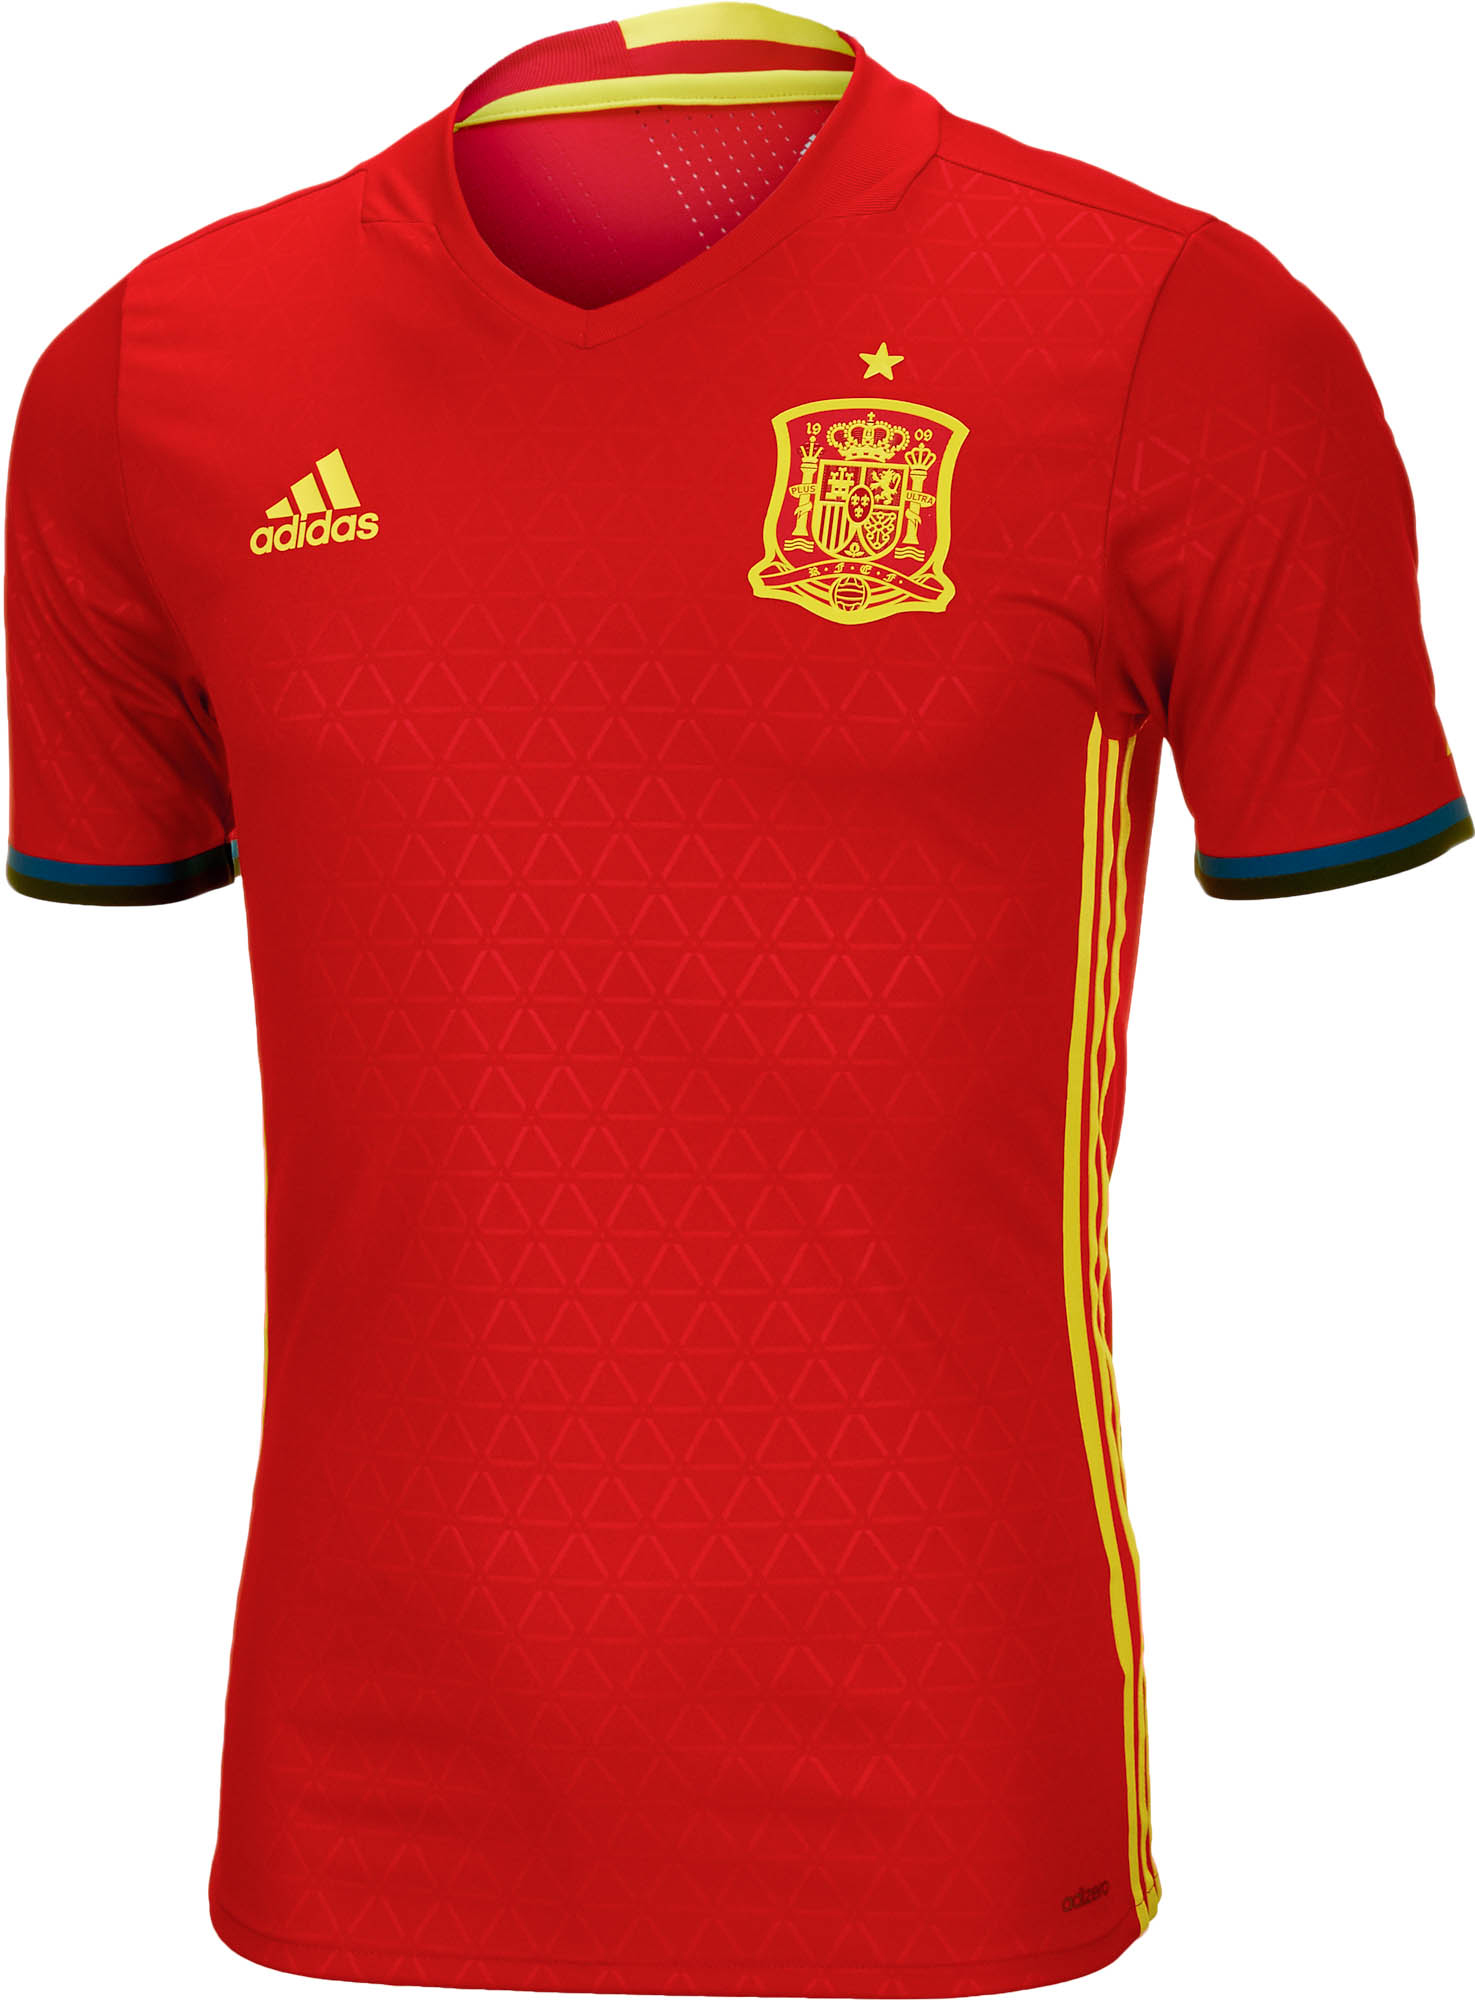 adidas Authentic Spain Jersey - 2016 Home Spain Jerseys e1e1ab643